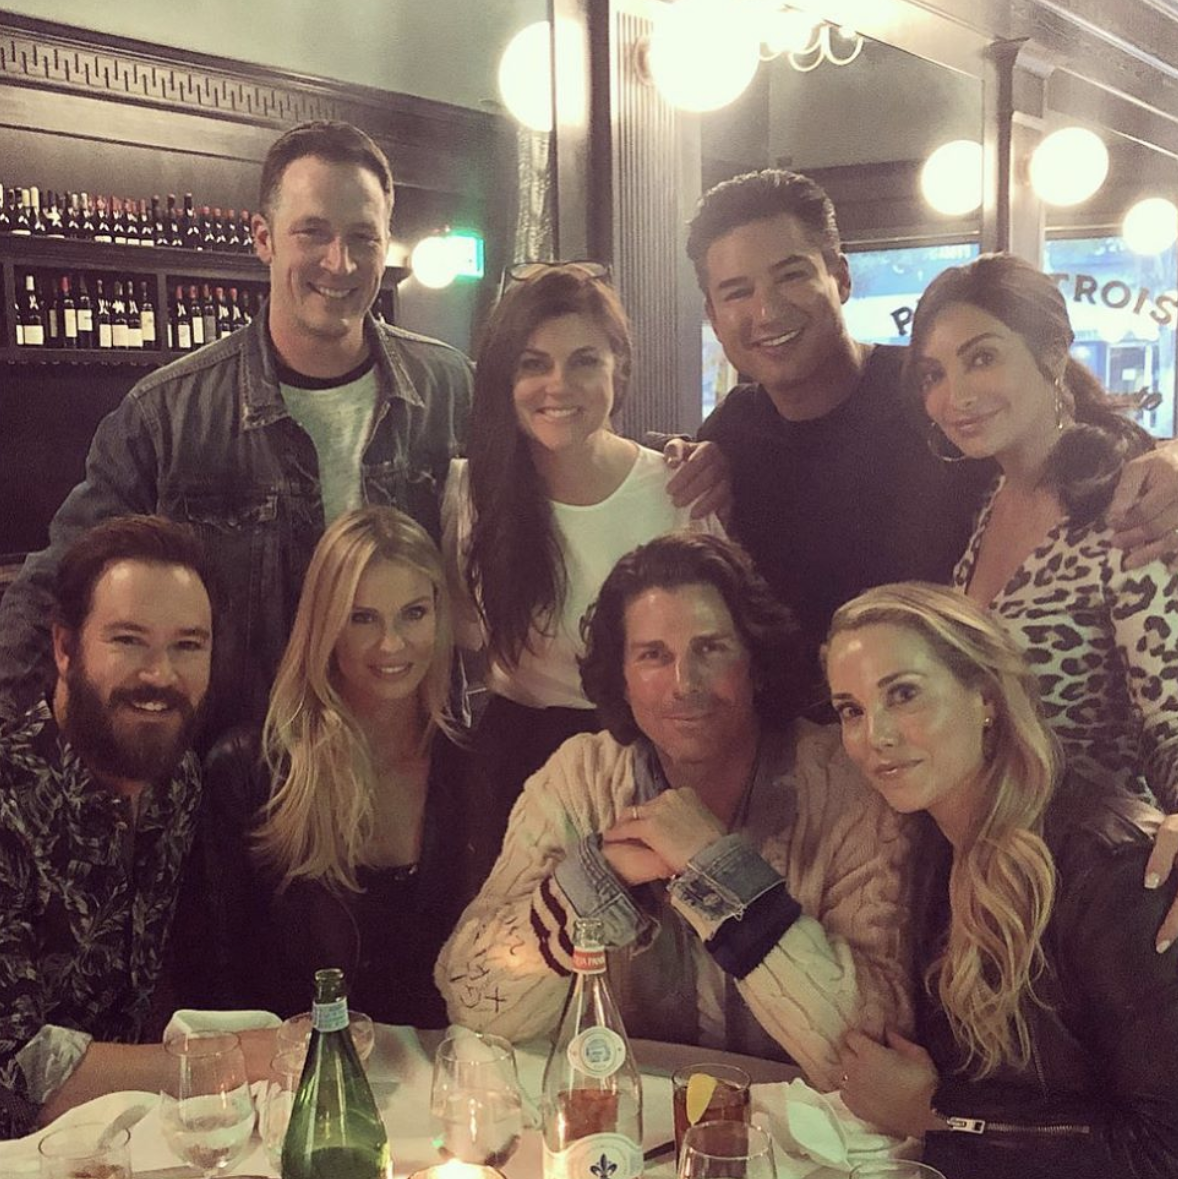 The 'Saved by the Bell' Cast Reunion Is Proof That Friends Really Are Forever